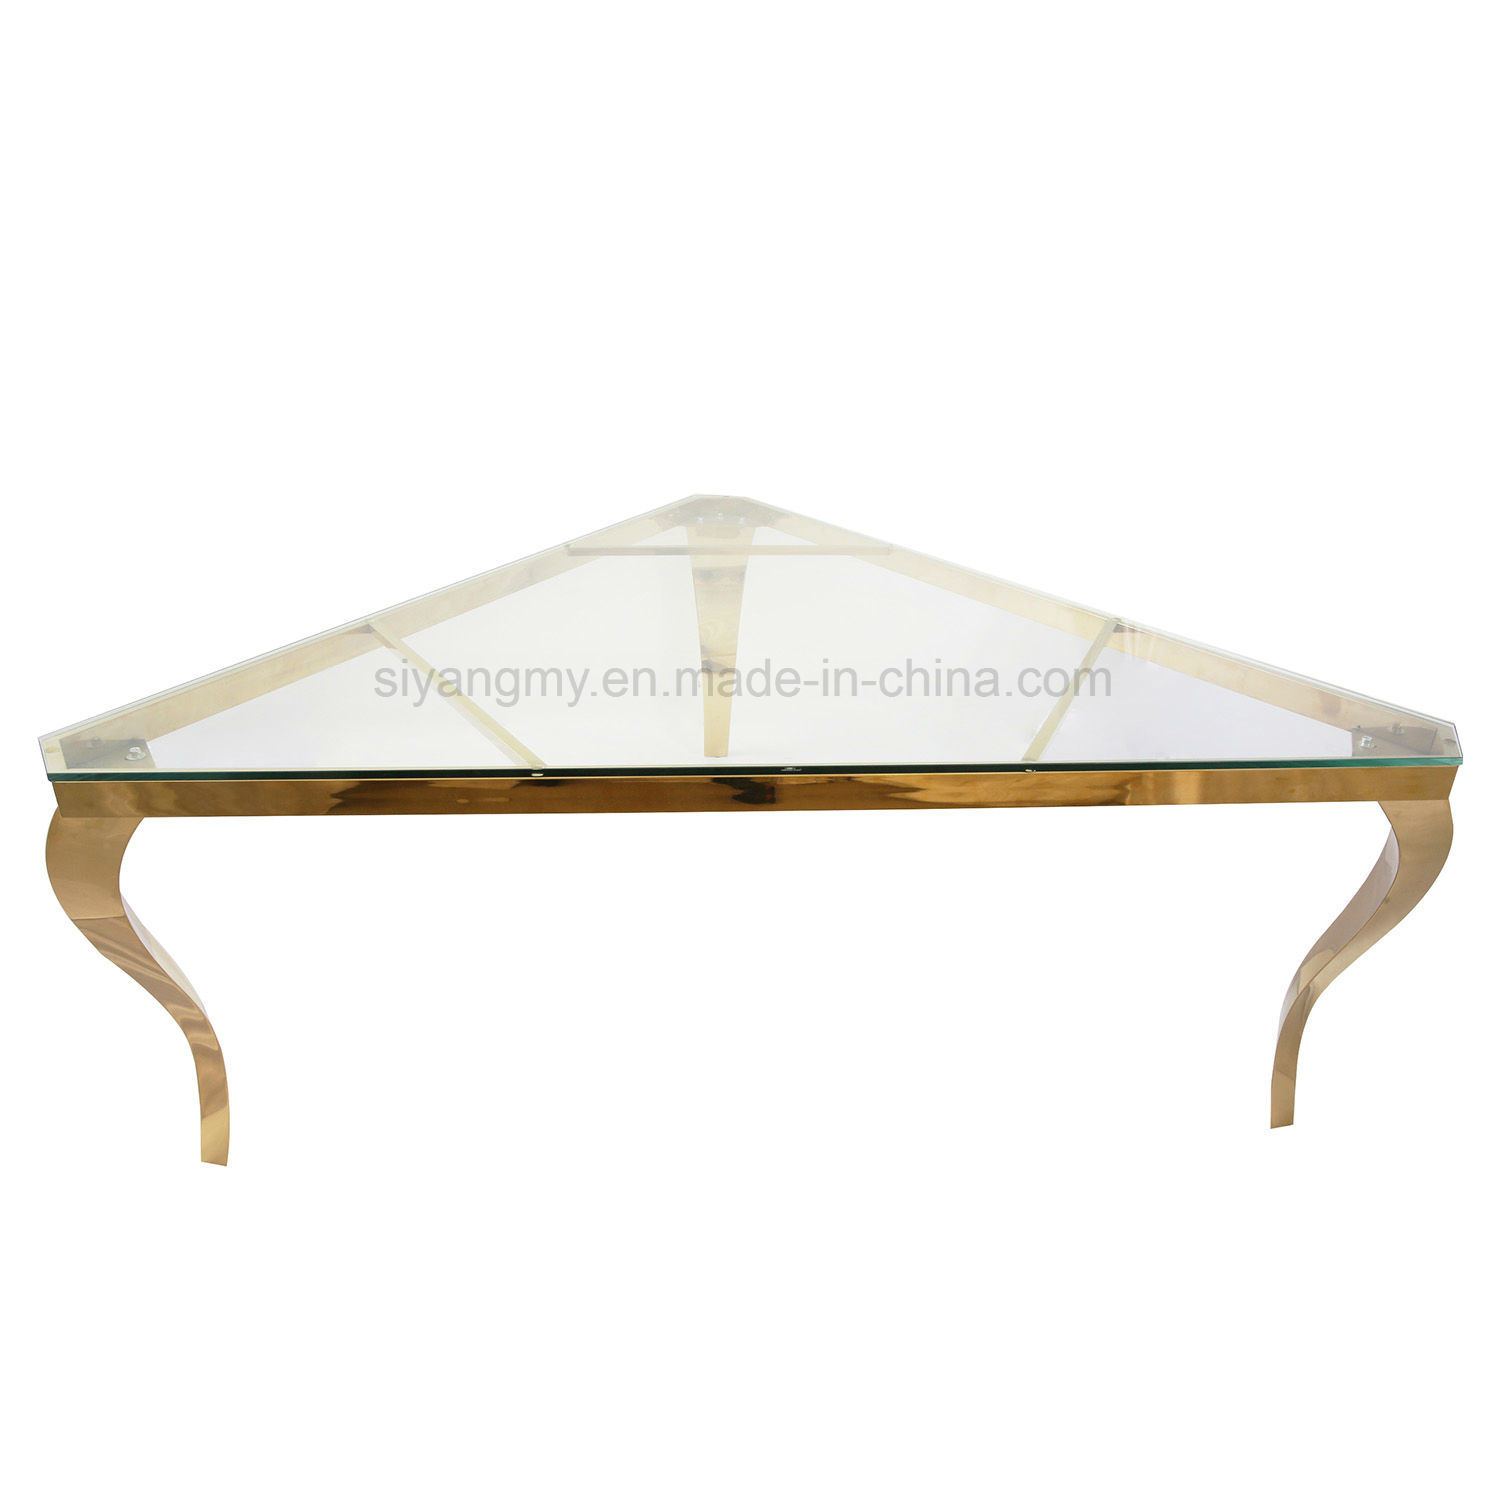 - China Wedding Furniture Glass Dining Table Folding Table Banquet